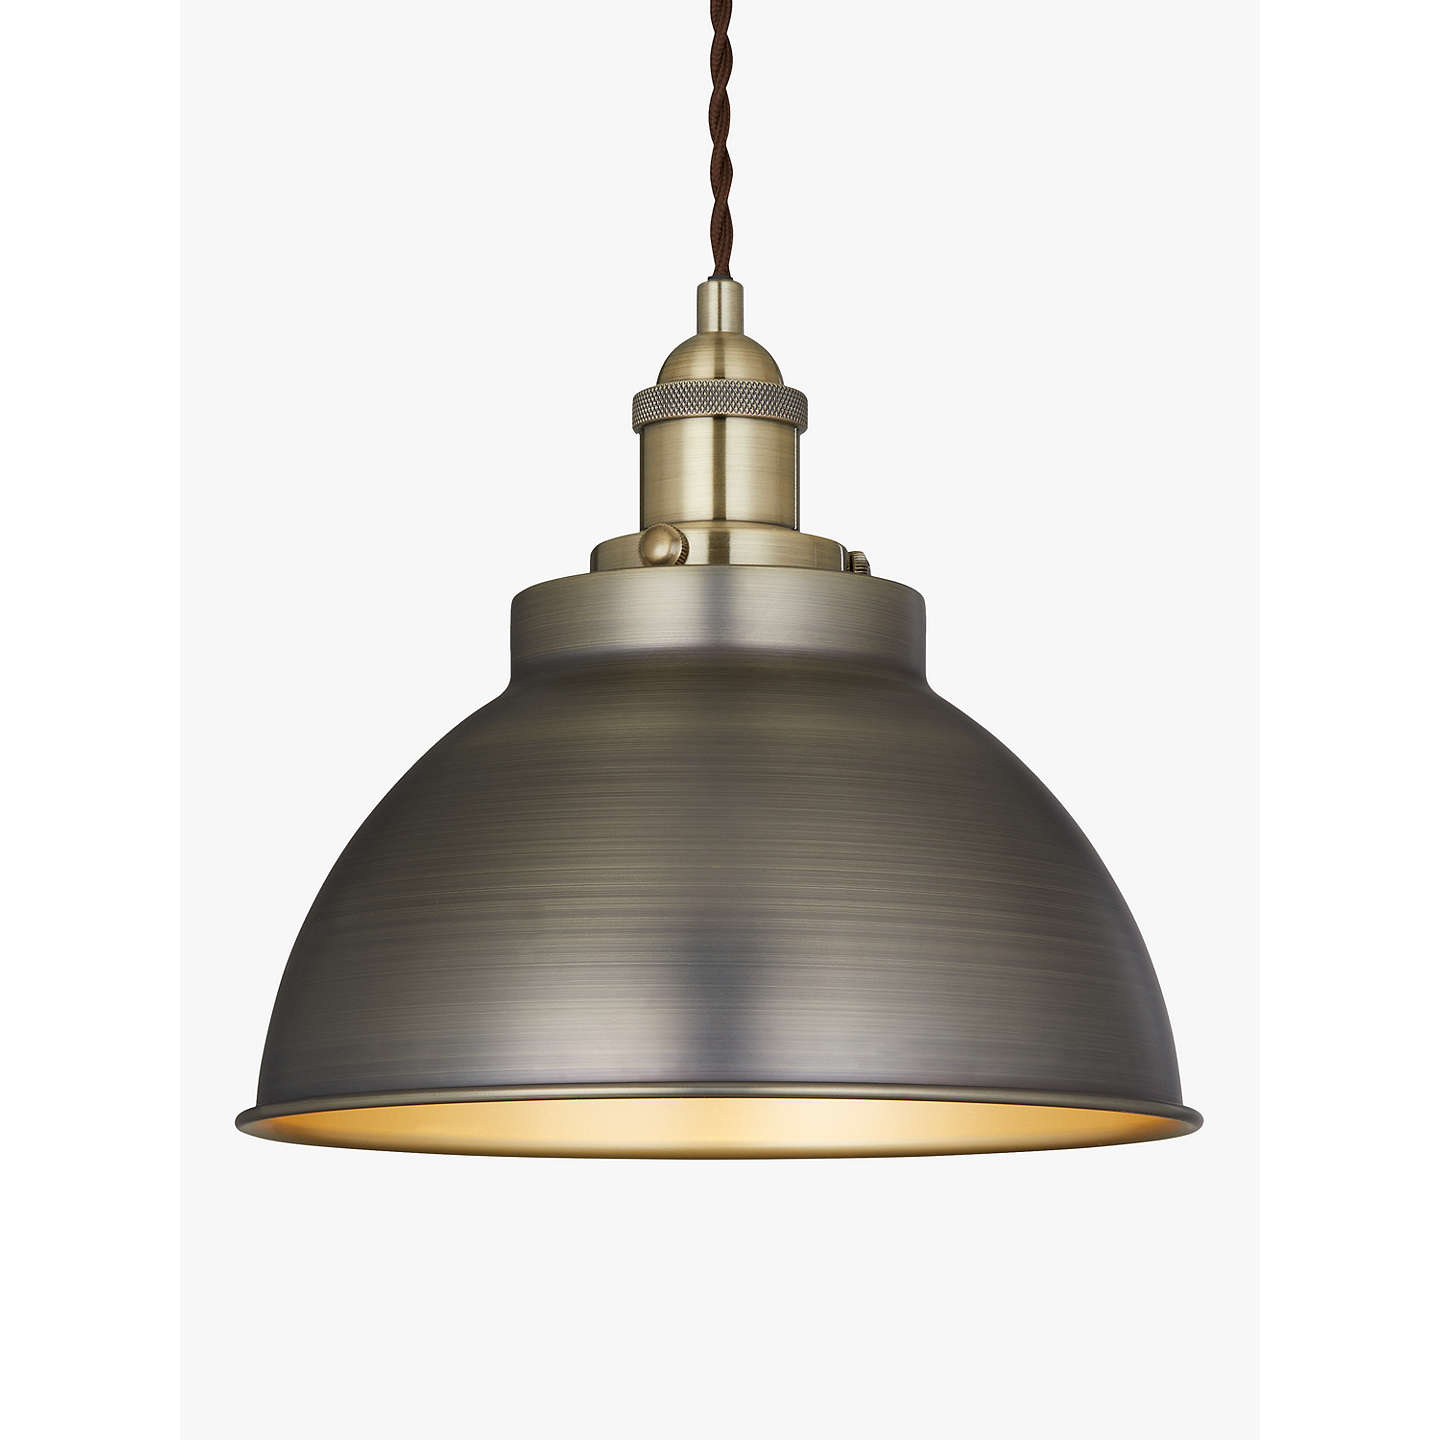 guidetti pendant diamant shop pia crippa for faceted lumi brass glass palainco by with